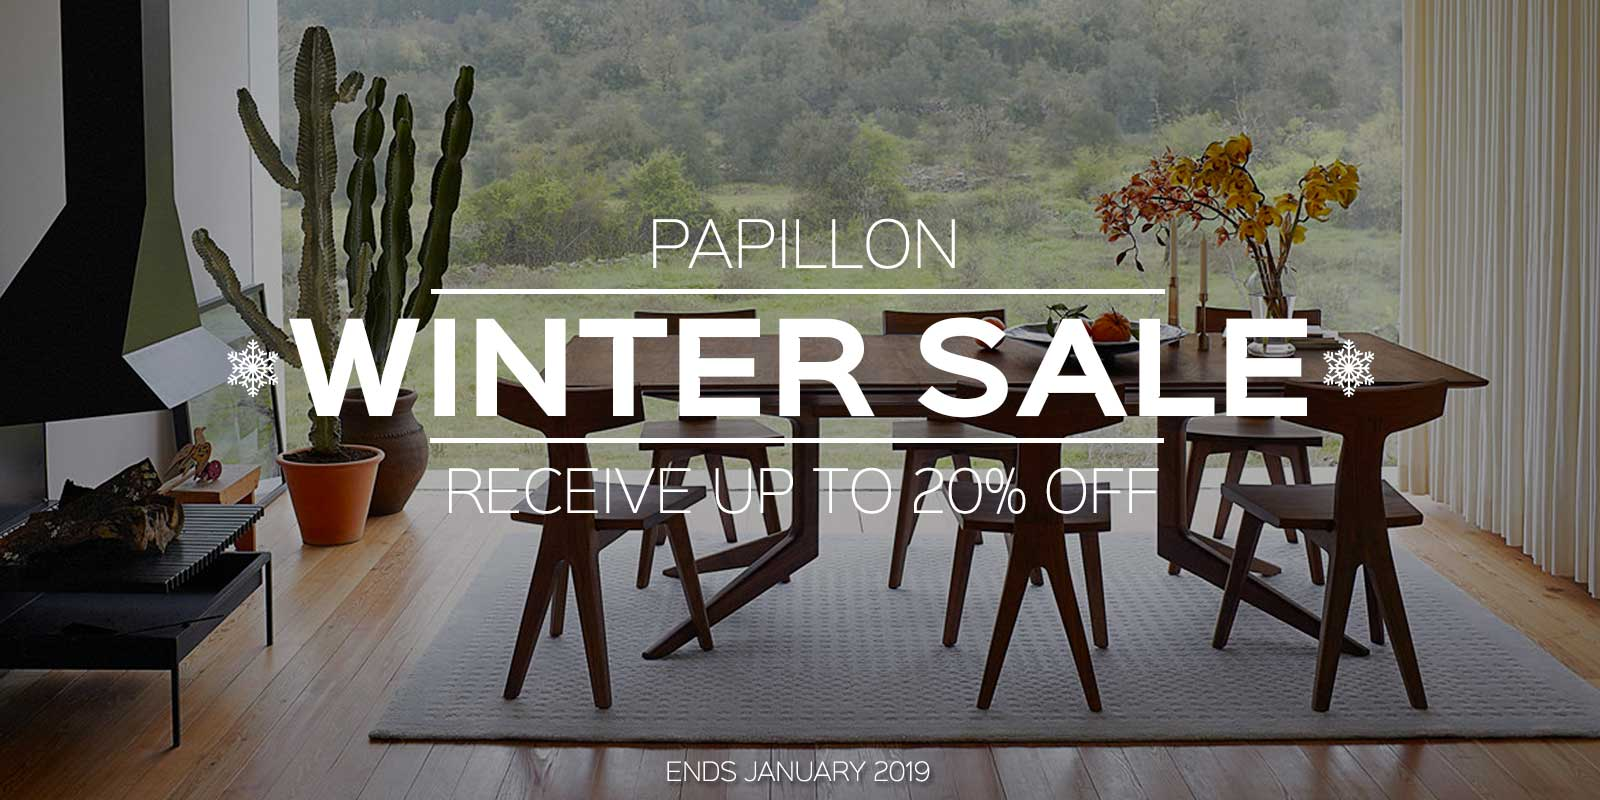 Papillon Interiors Winter Sale 2018 - Matthew Hilton